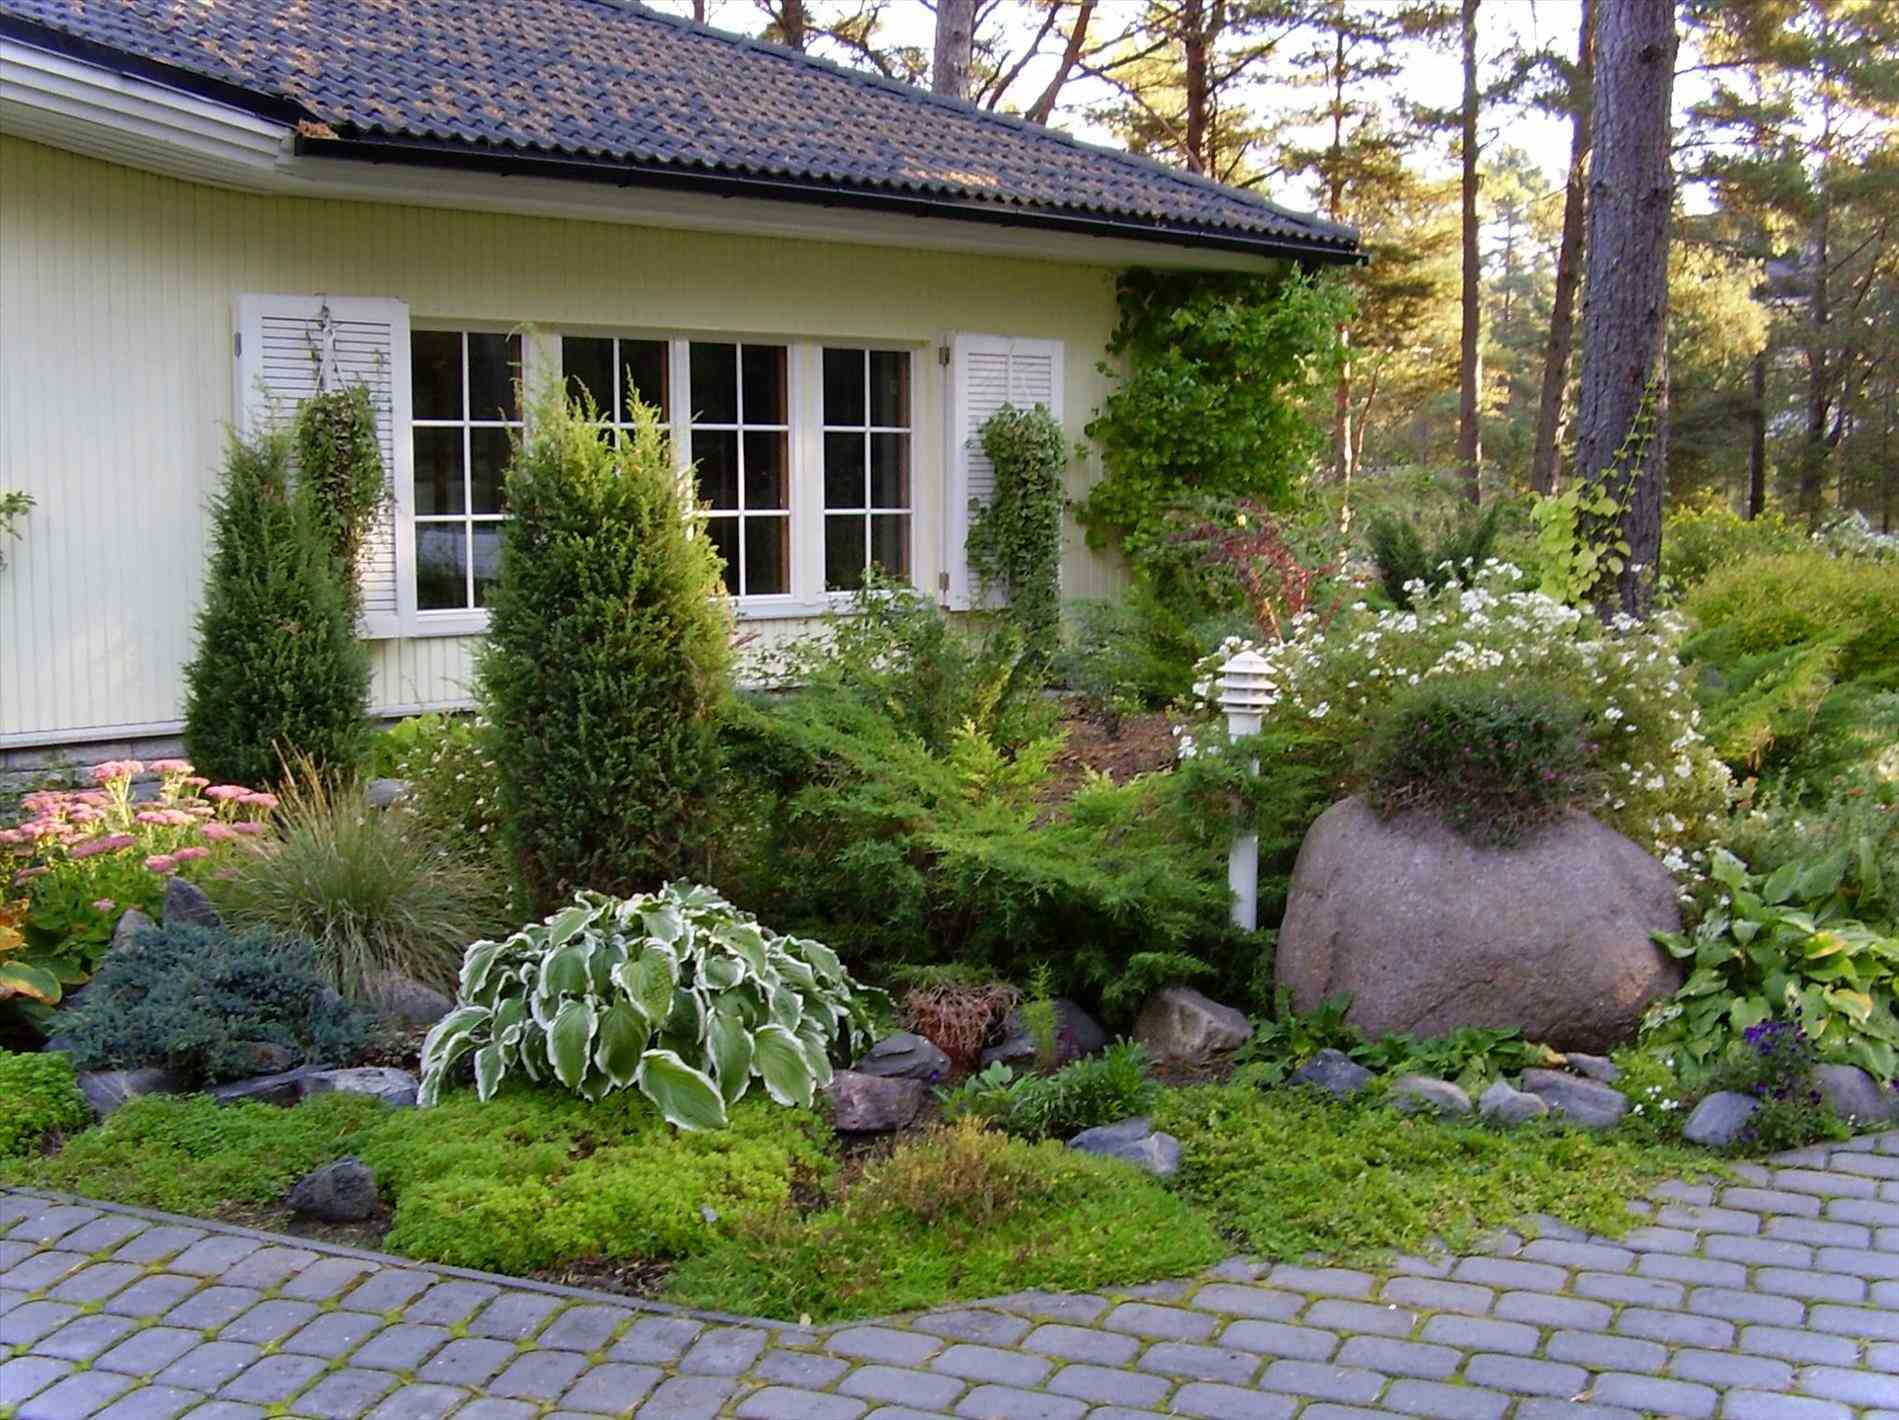 Cottage clipart front garden. Marvelous ideas landscape for